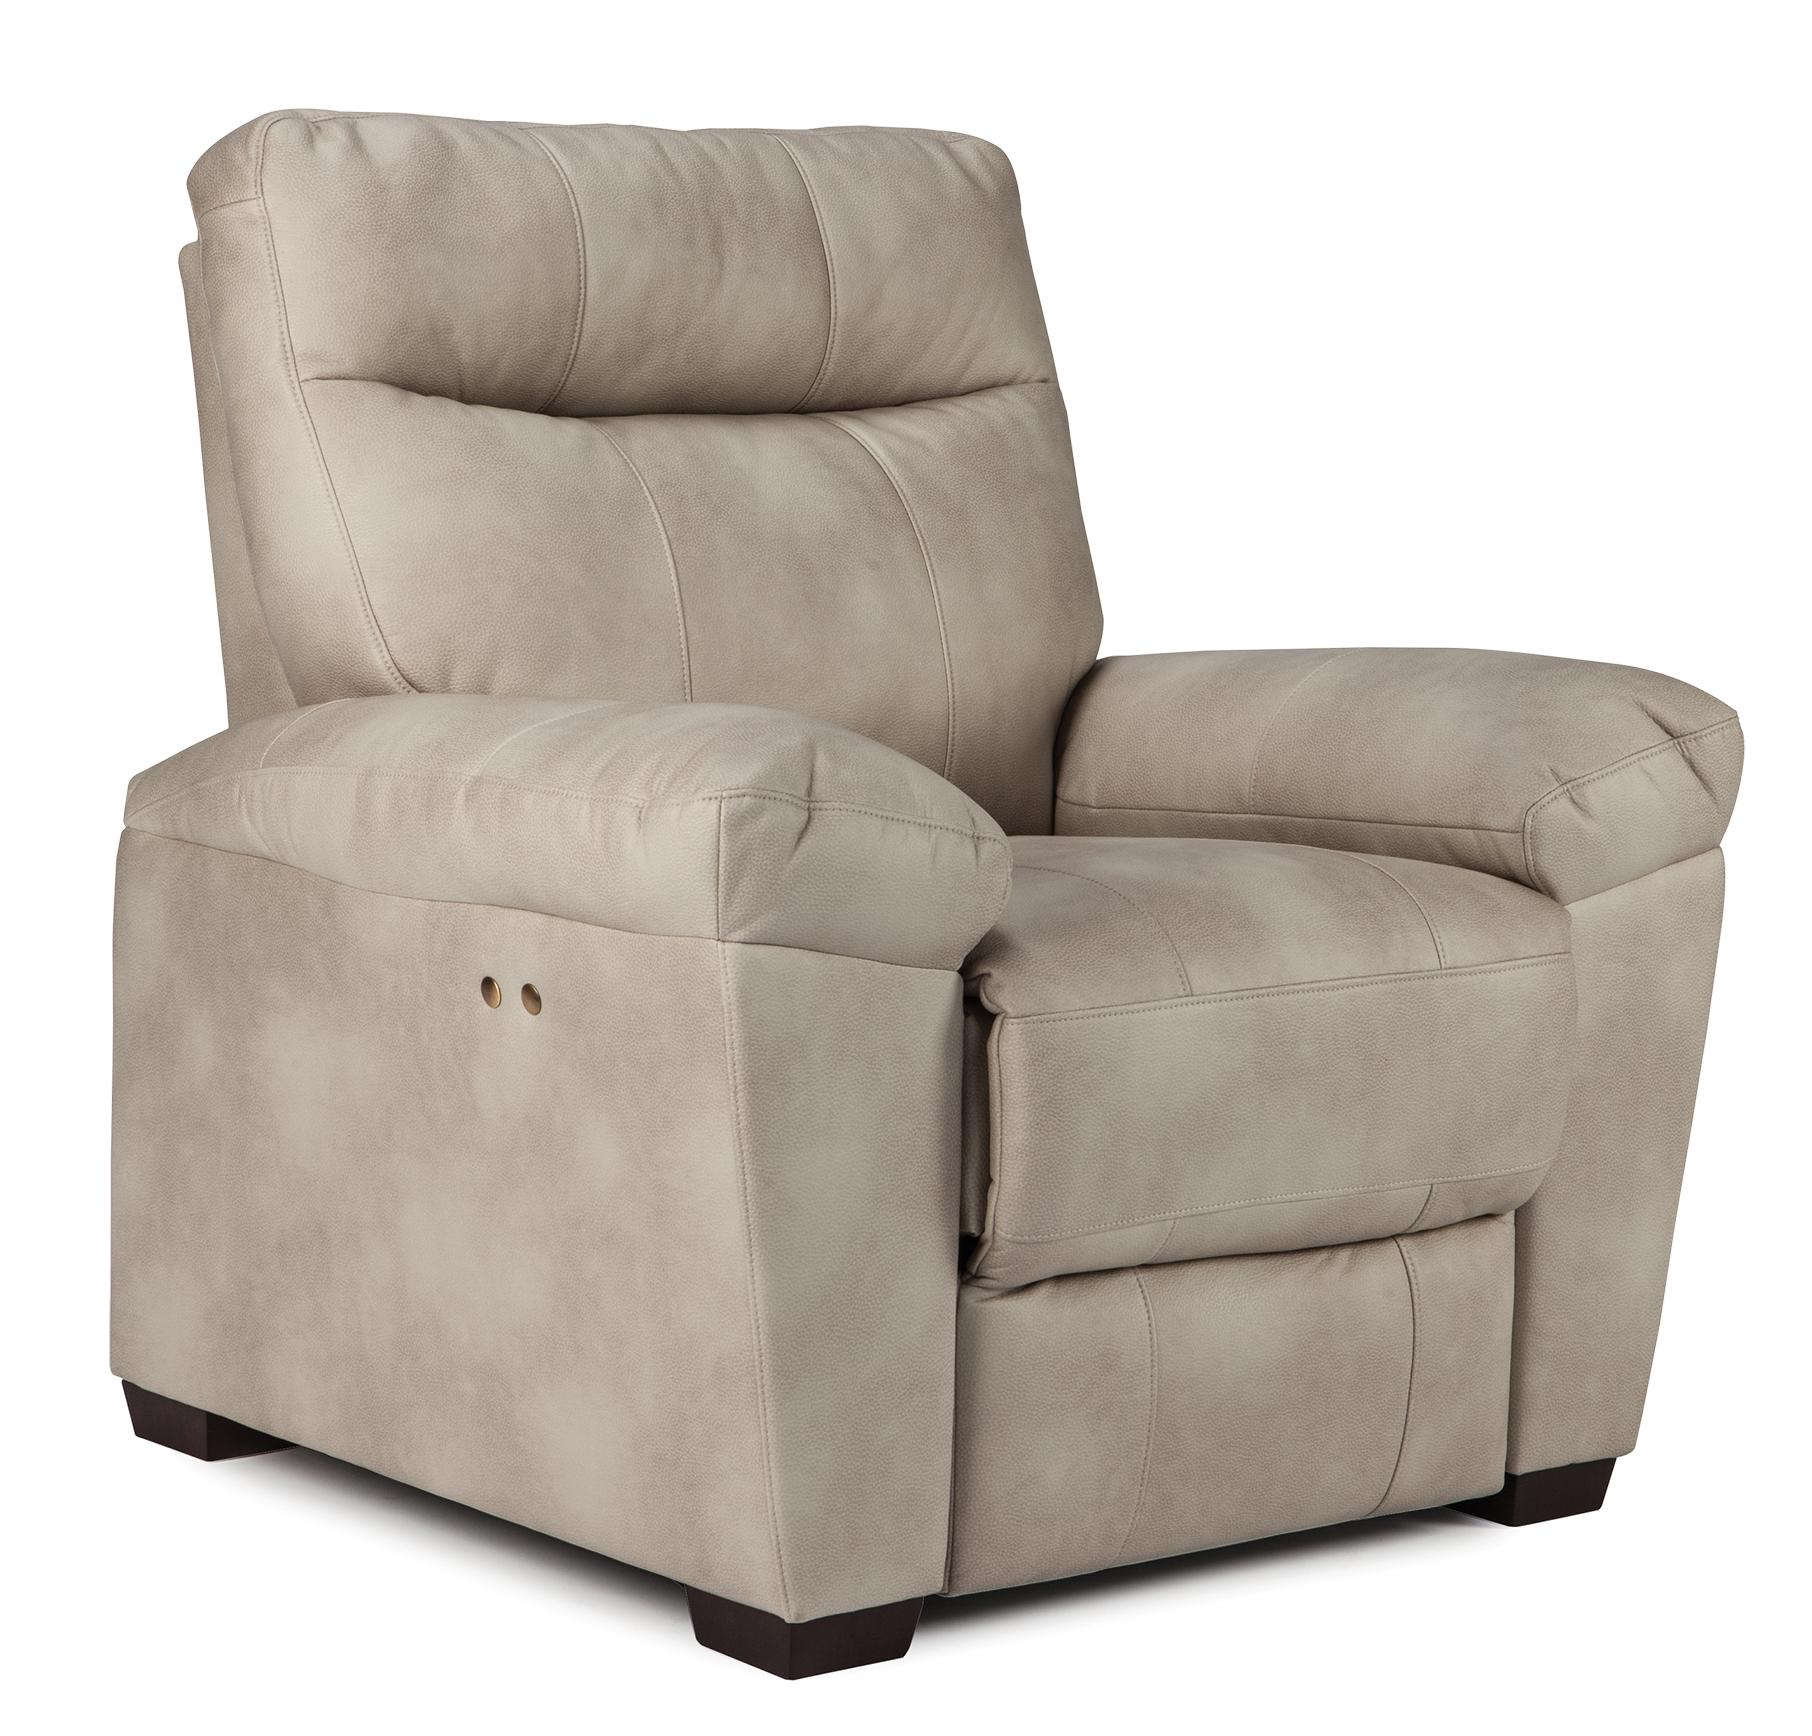 Best Home Furnishings Makena Power Space Saver Recliner - Item Number: R900UP2-27593AU